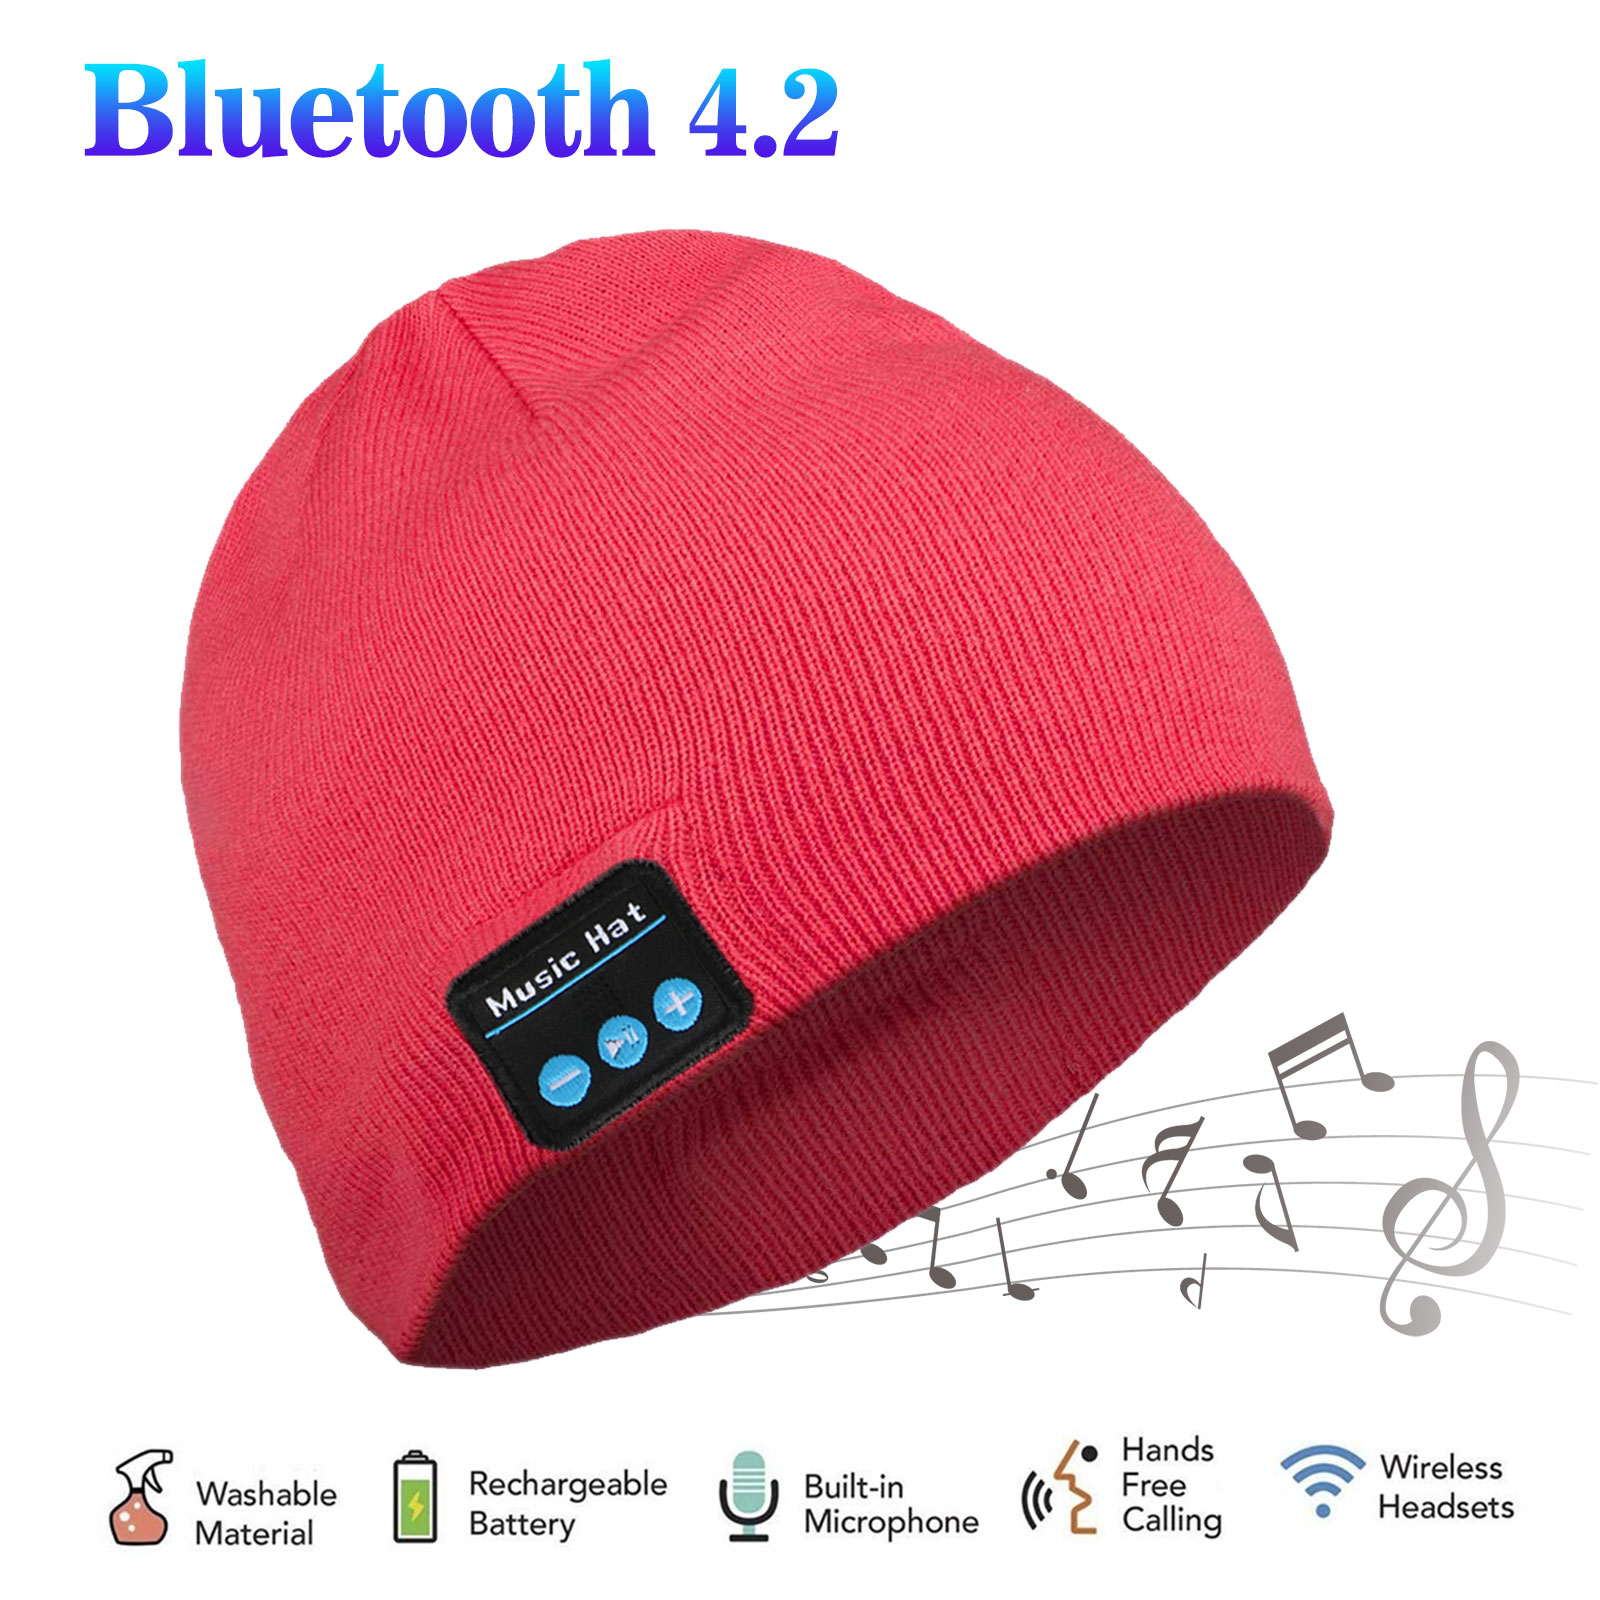 Bluetooth Beanie Hat, Wireless Bluetooth Music Warm Cap with Control Panel, Removable Headphones, USB Charger, Noise Reduction, Handfree Calling Fit for Outdoor Sports/Skiing/Running/Skating